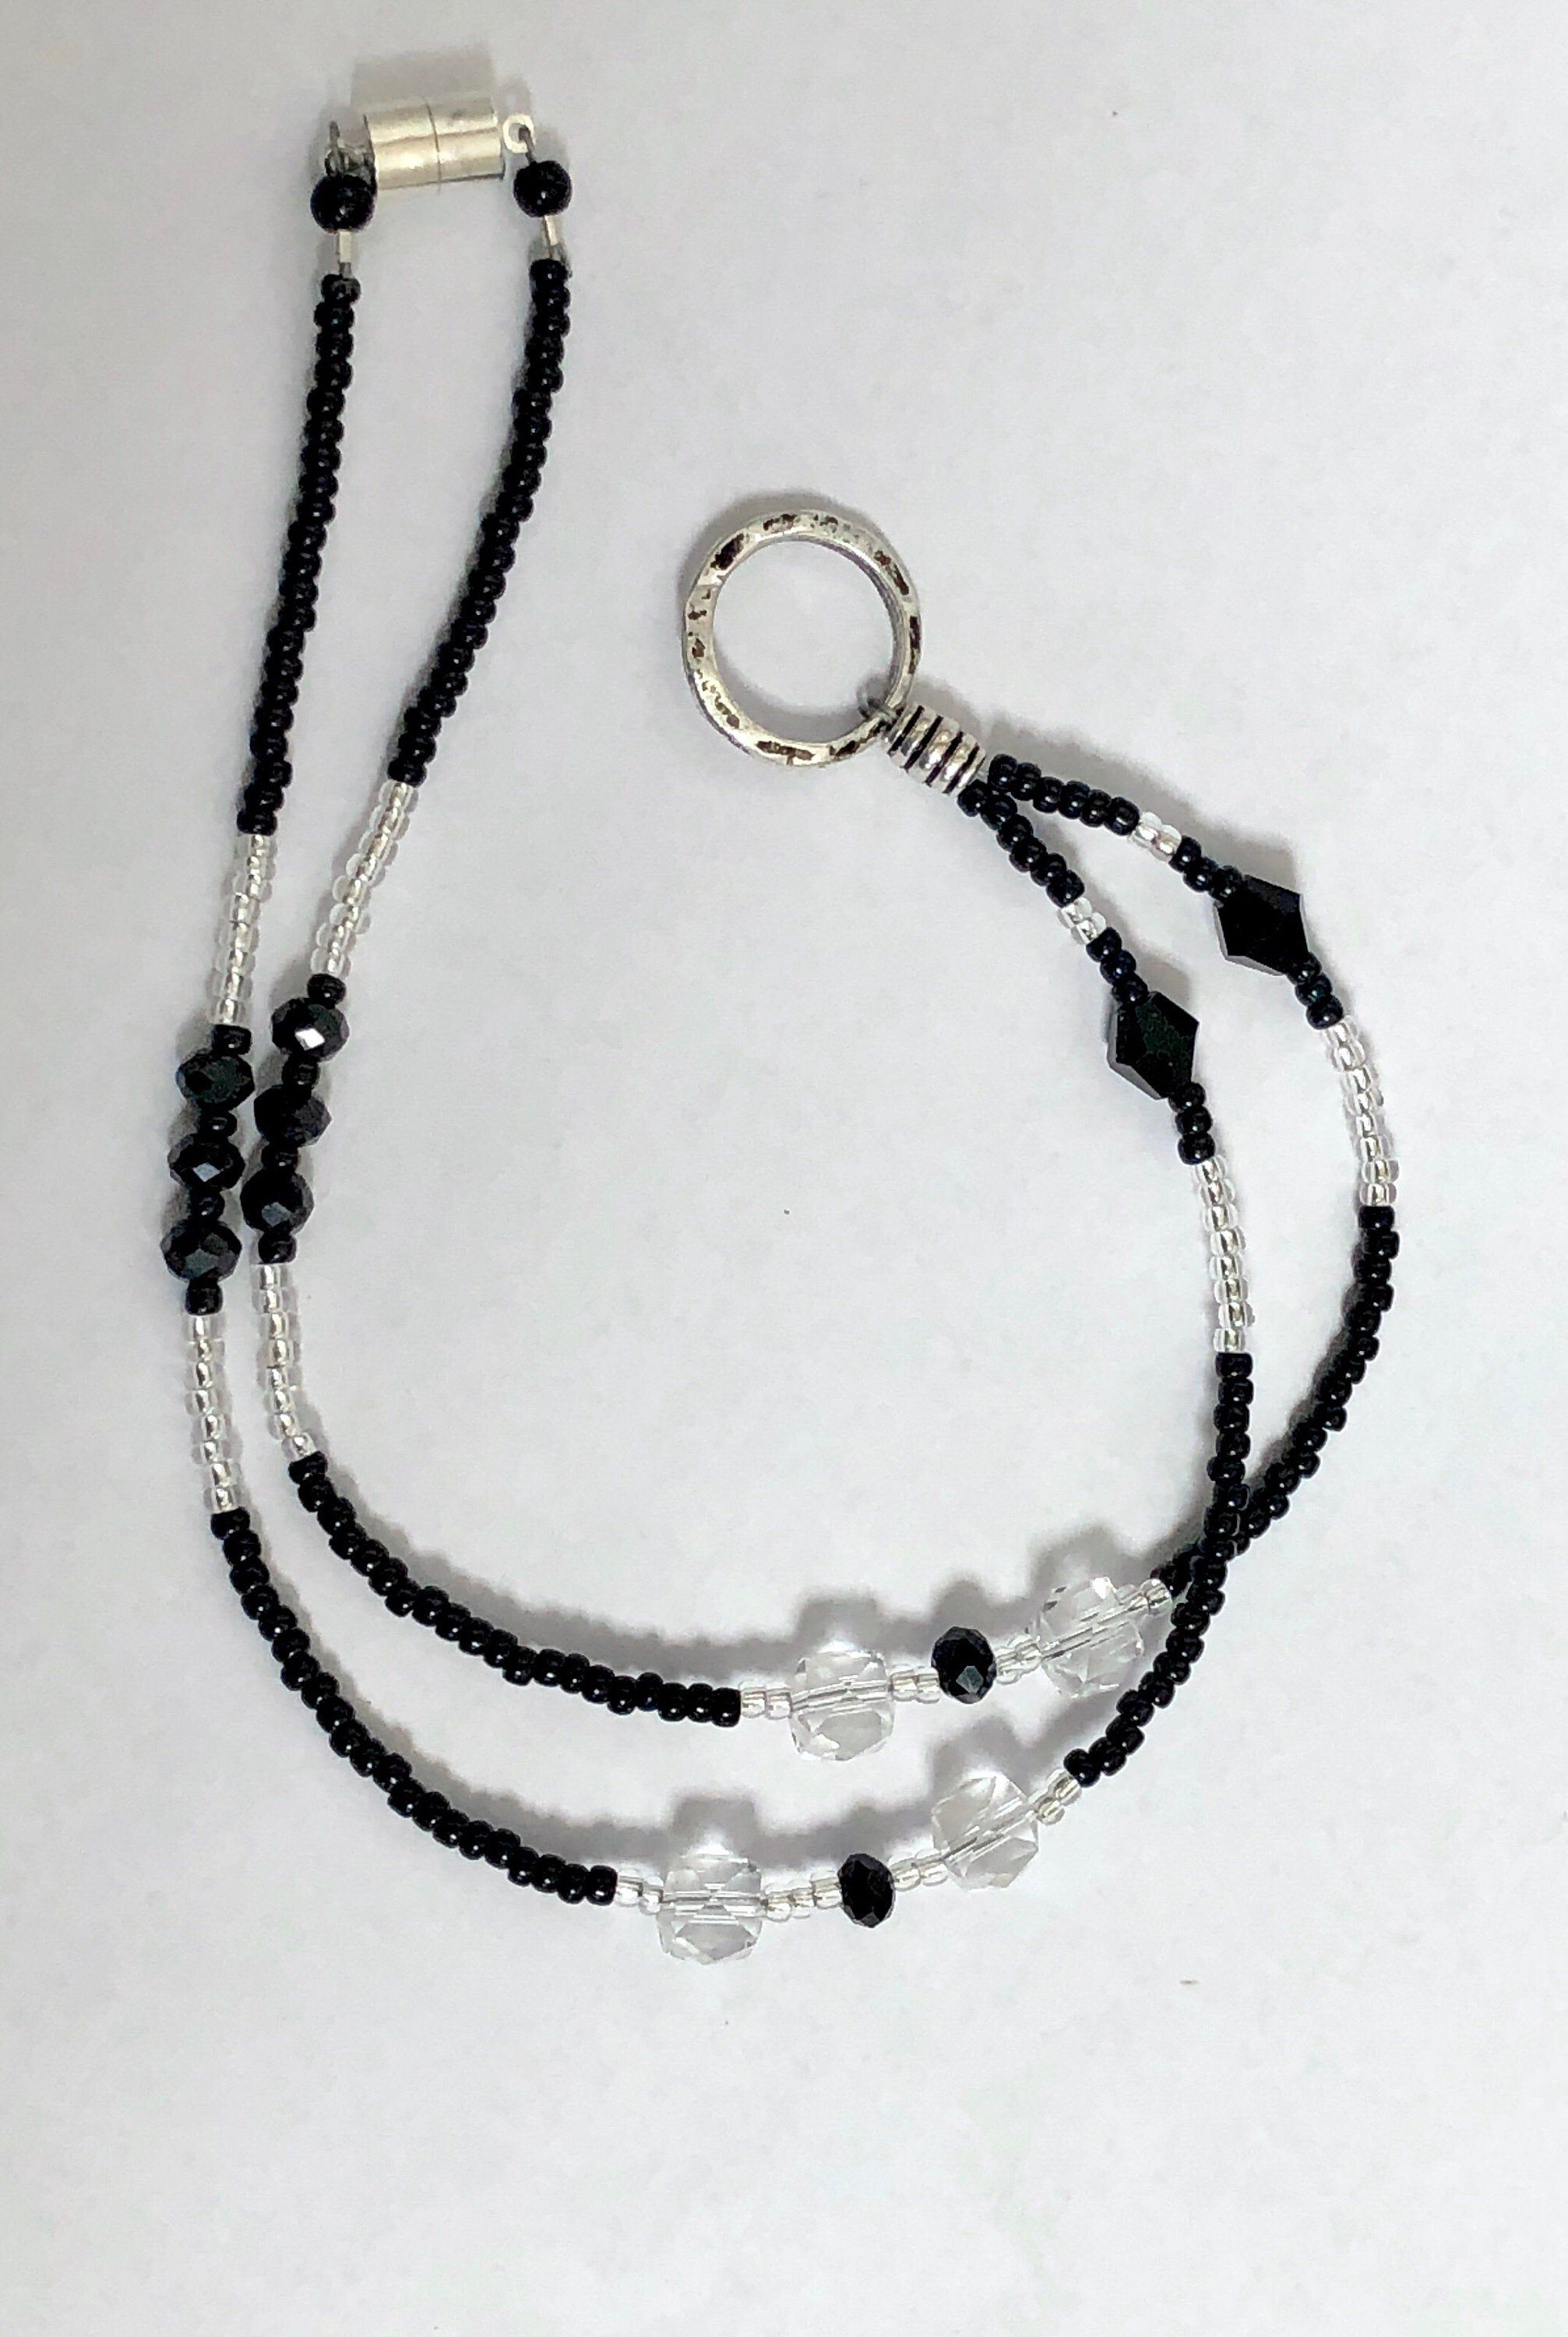 Faux Pearls Bead ID Badge Holder Lanyard Necklace with Magnetic Breakaway Clasp